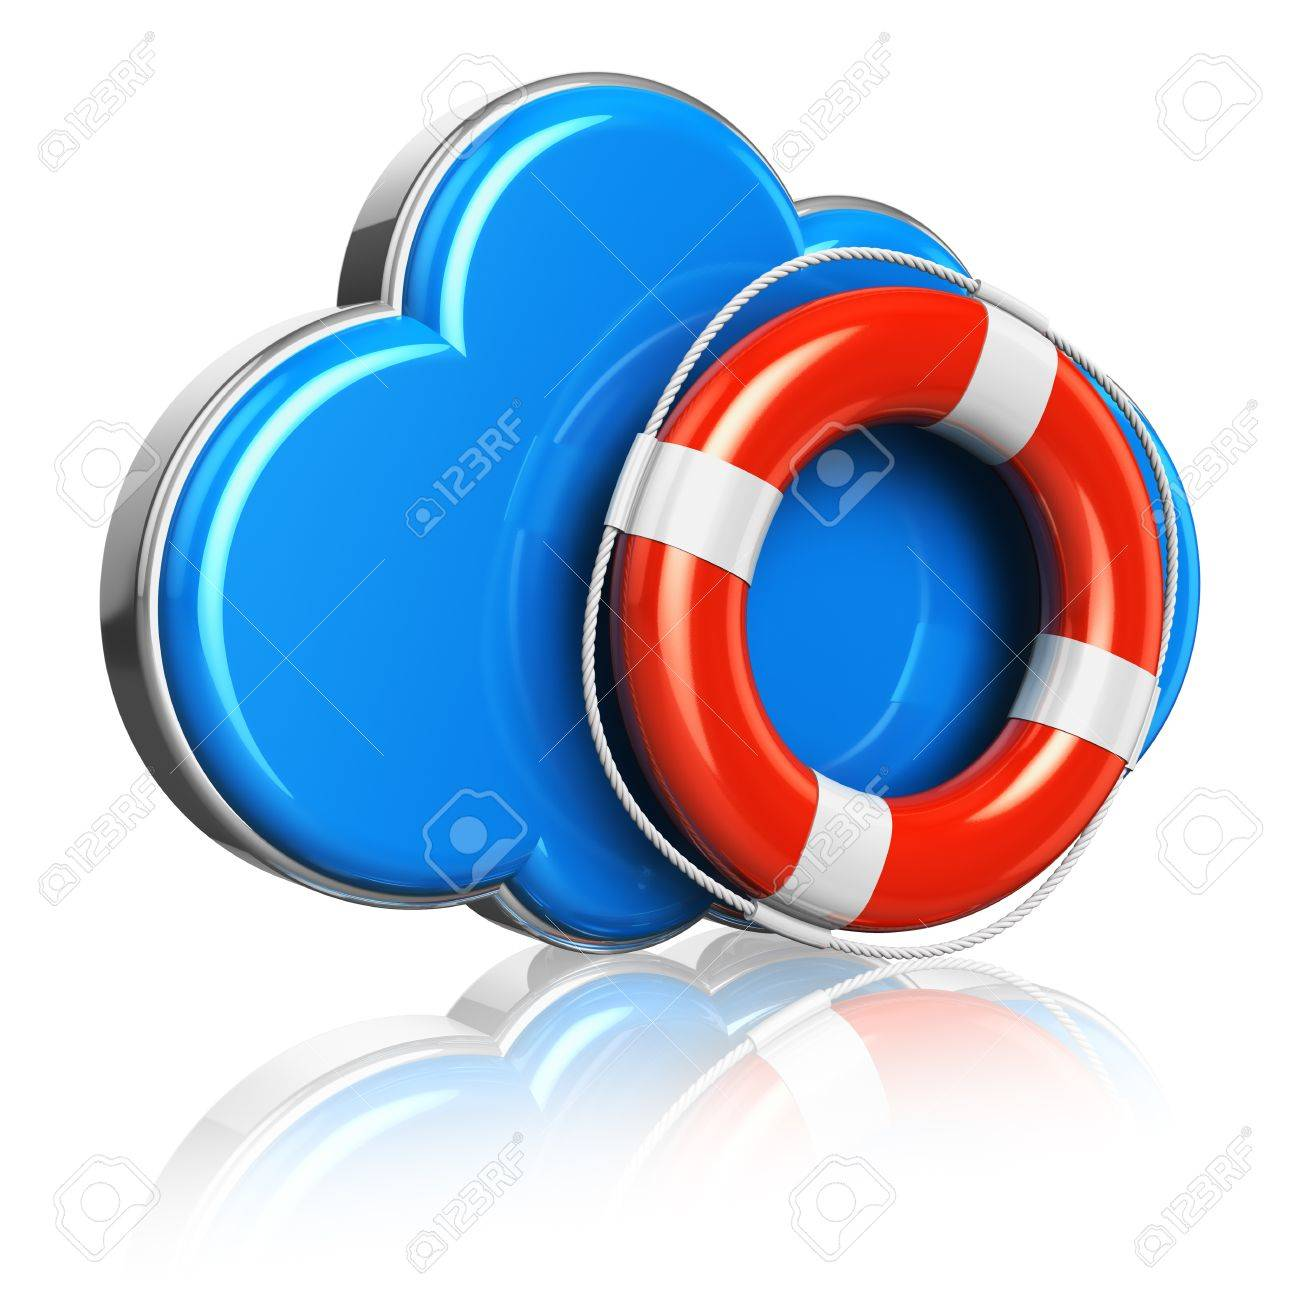 Cloud computing and storage security concept: blue glossy cloud icon with red lifesaver belt isolated on white background with reflection effect Stock Photo - 15494848